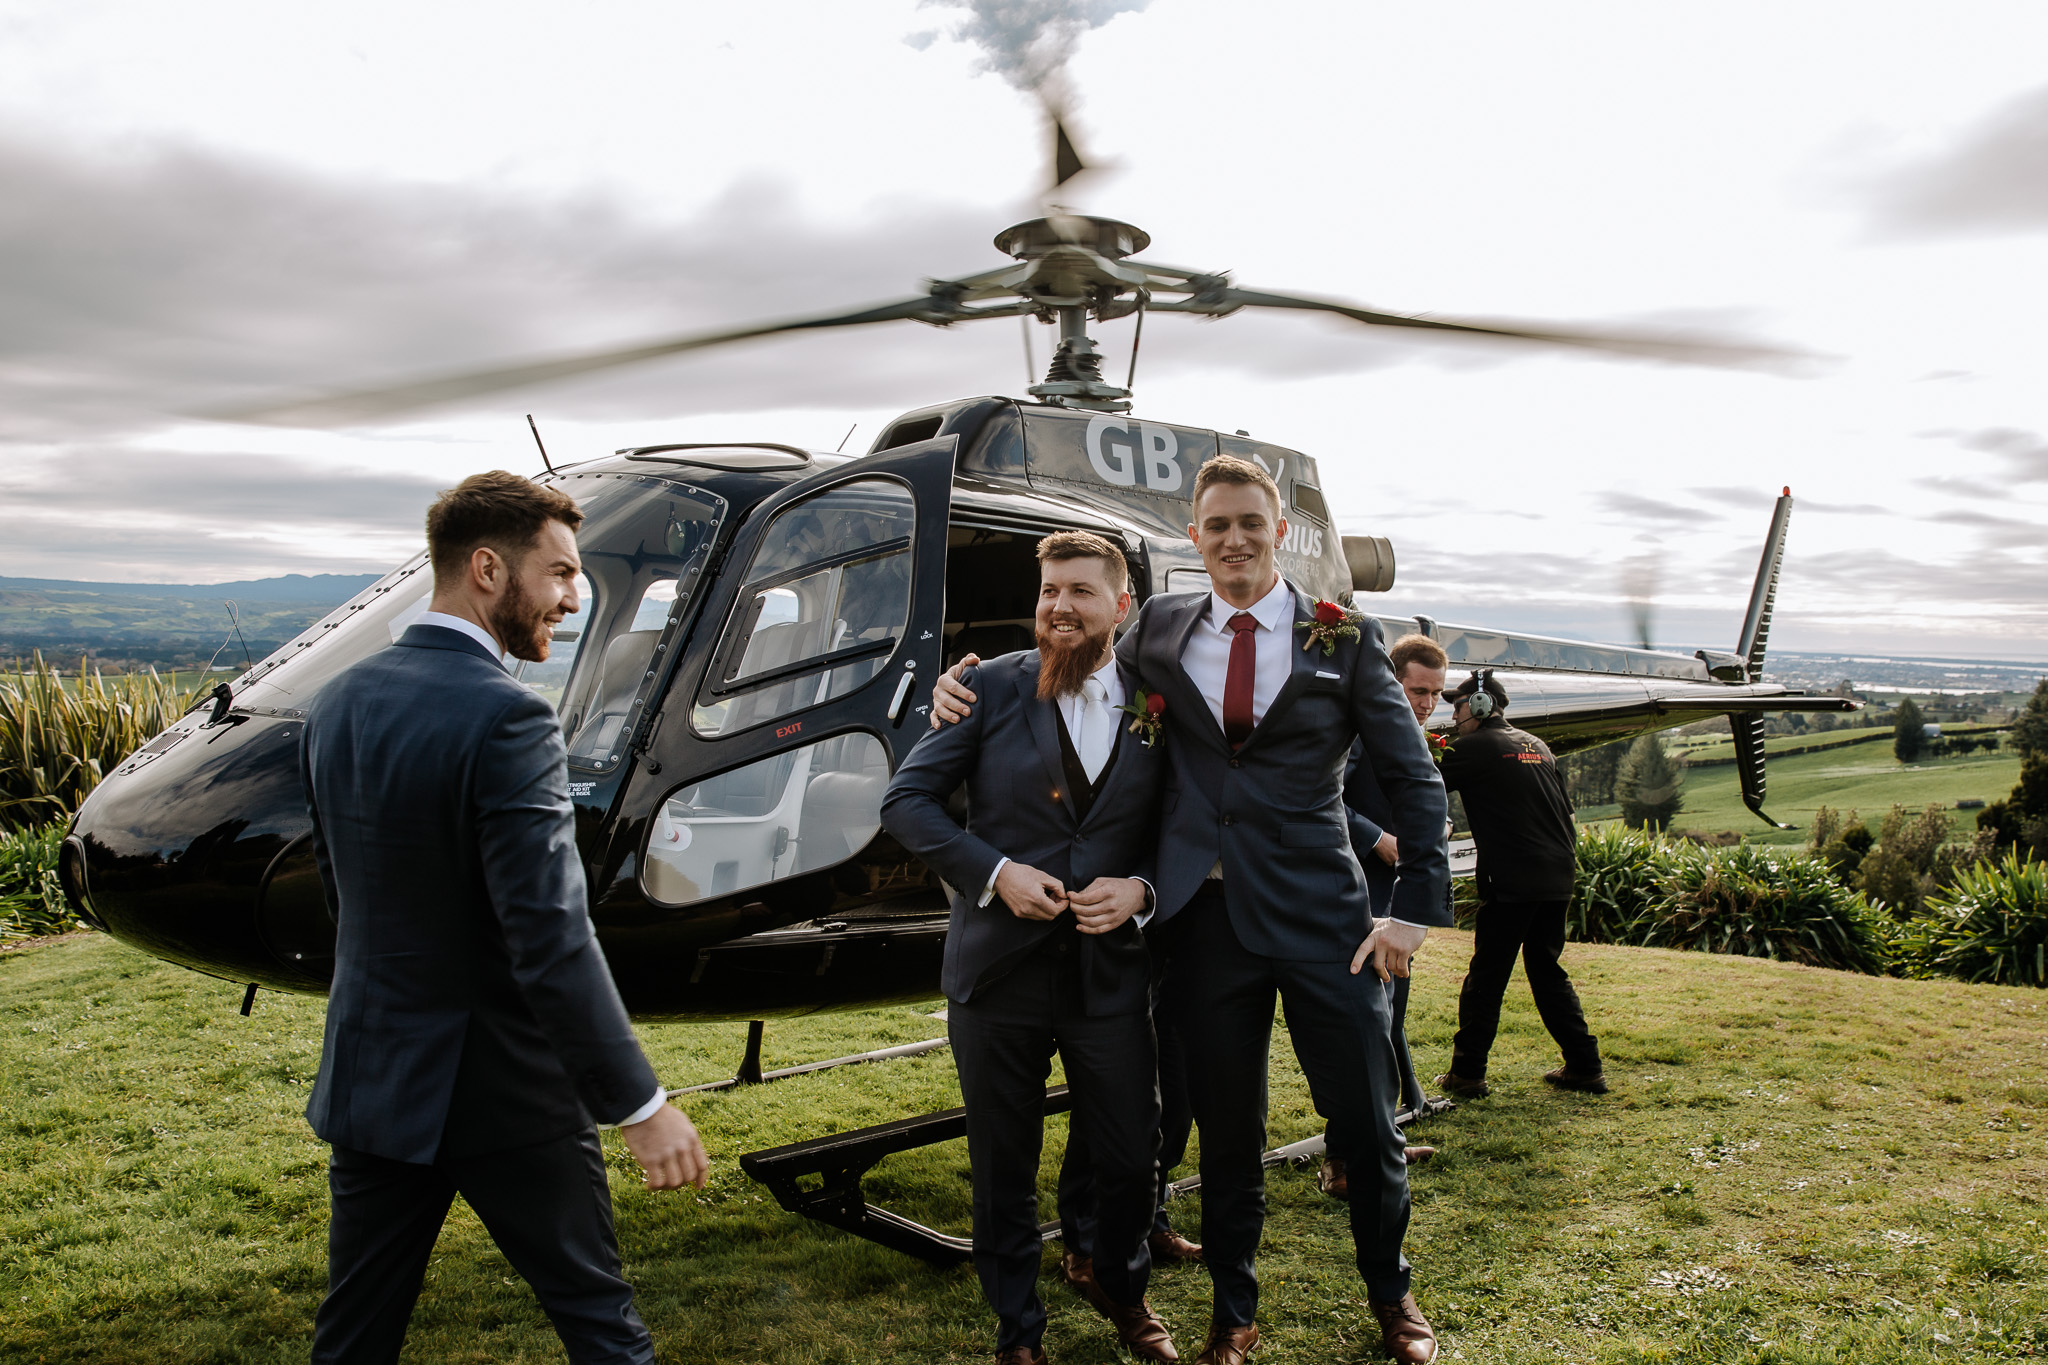 Arriving to the wedding in a helicopter